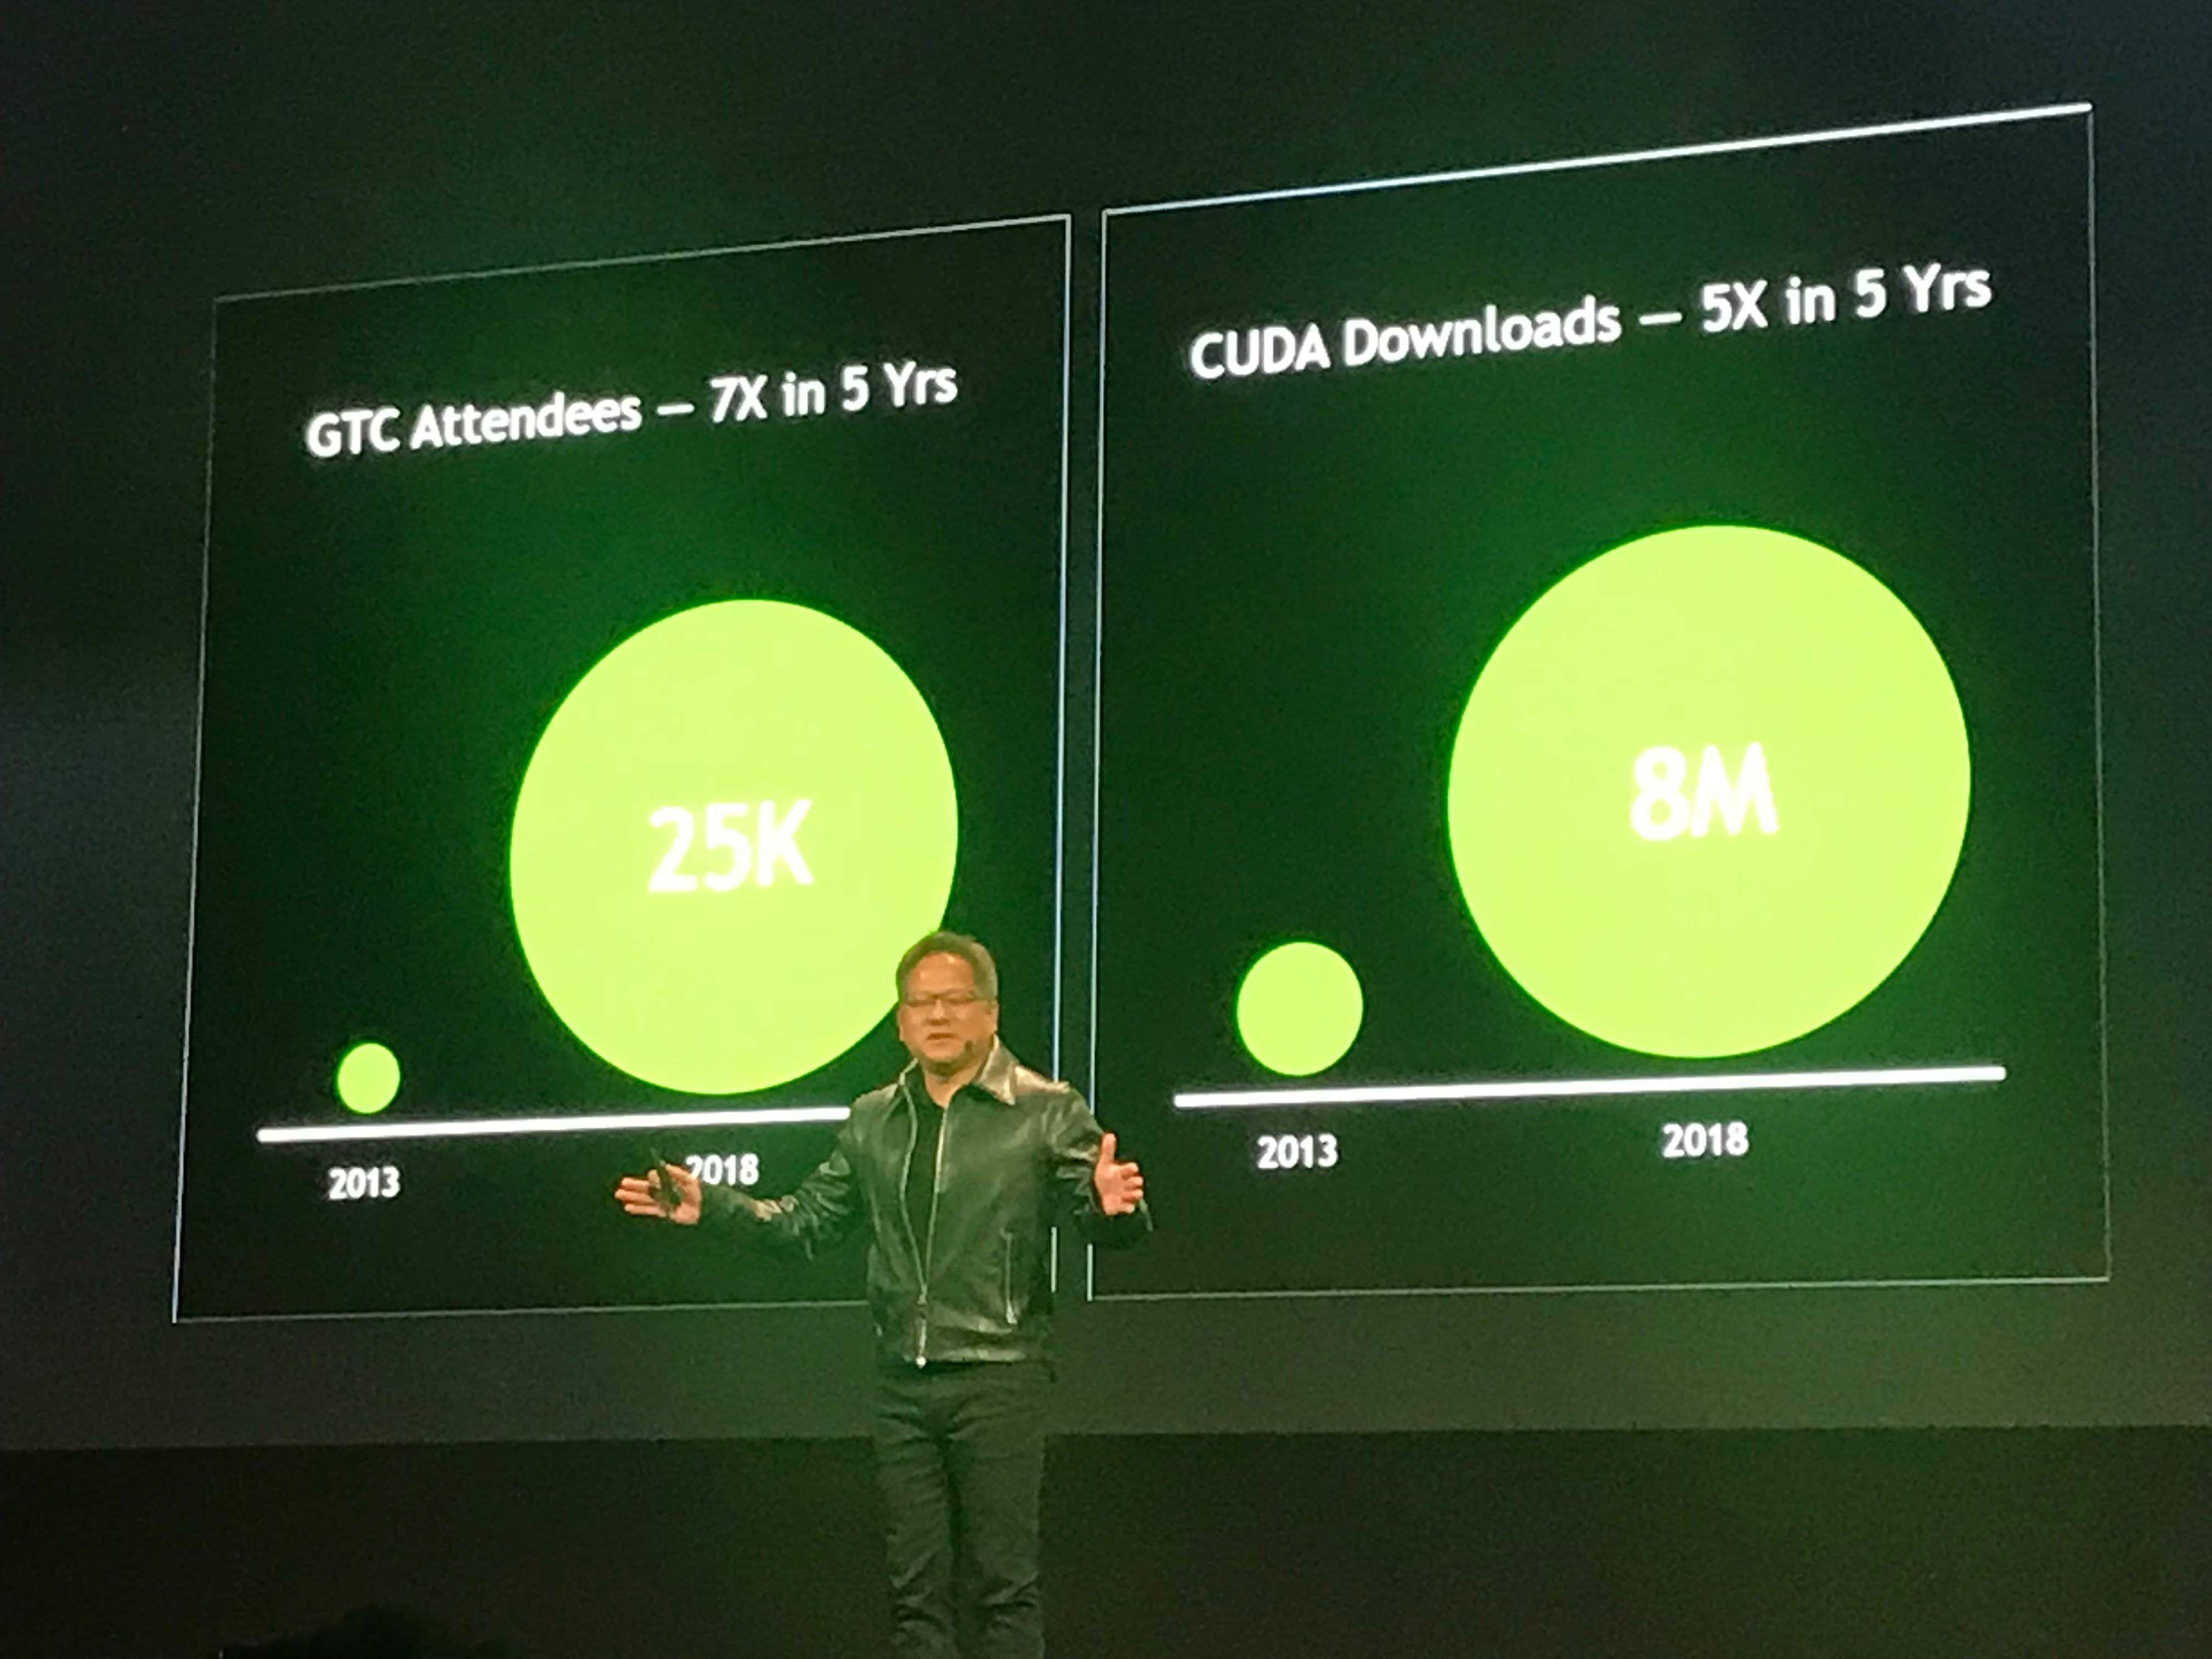 Who is Jensen Huang? NVIDIA CEO speaking at GTC 2018